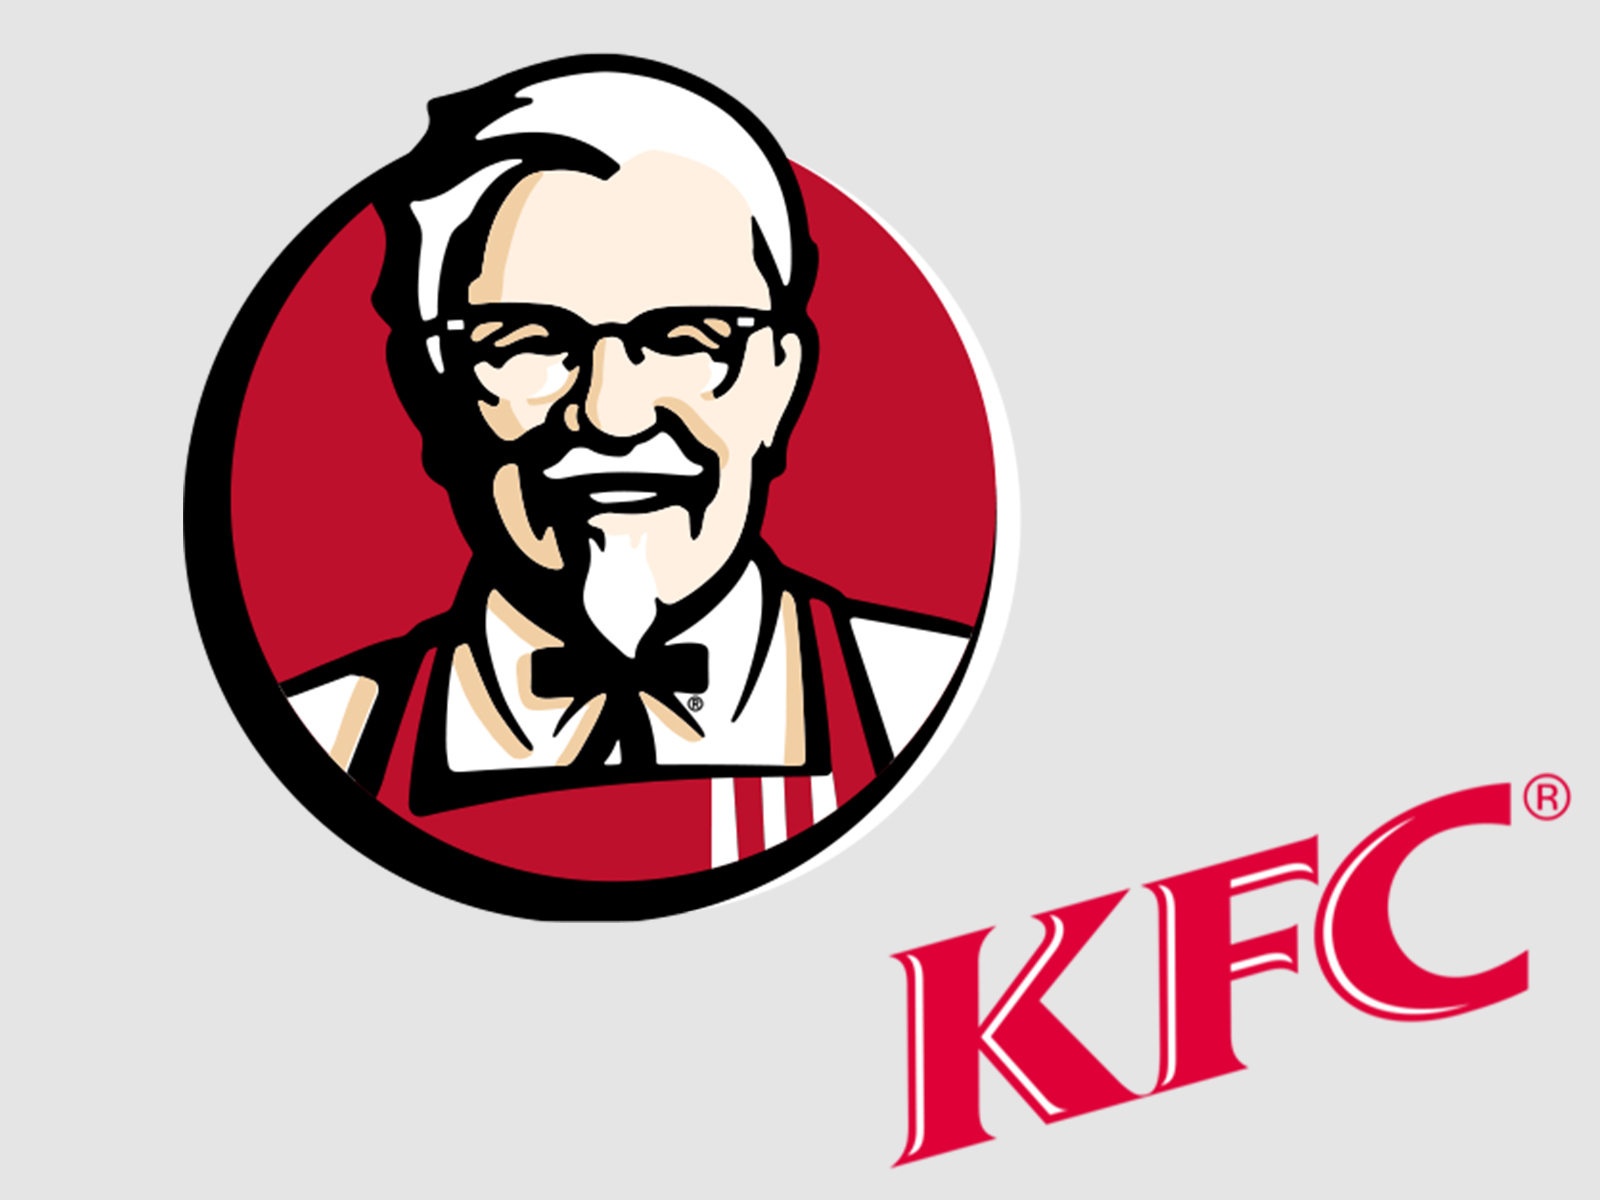 KFC Fast Food Brand Powerpoint Templates